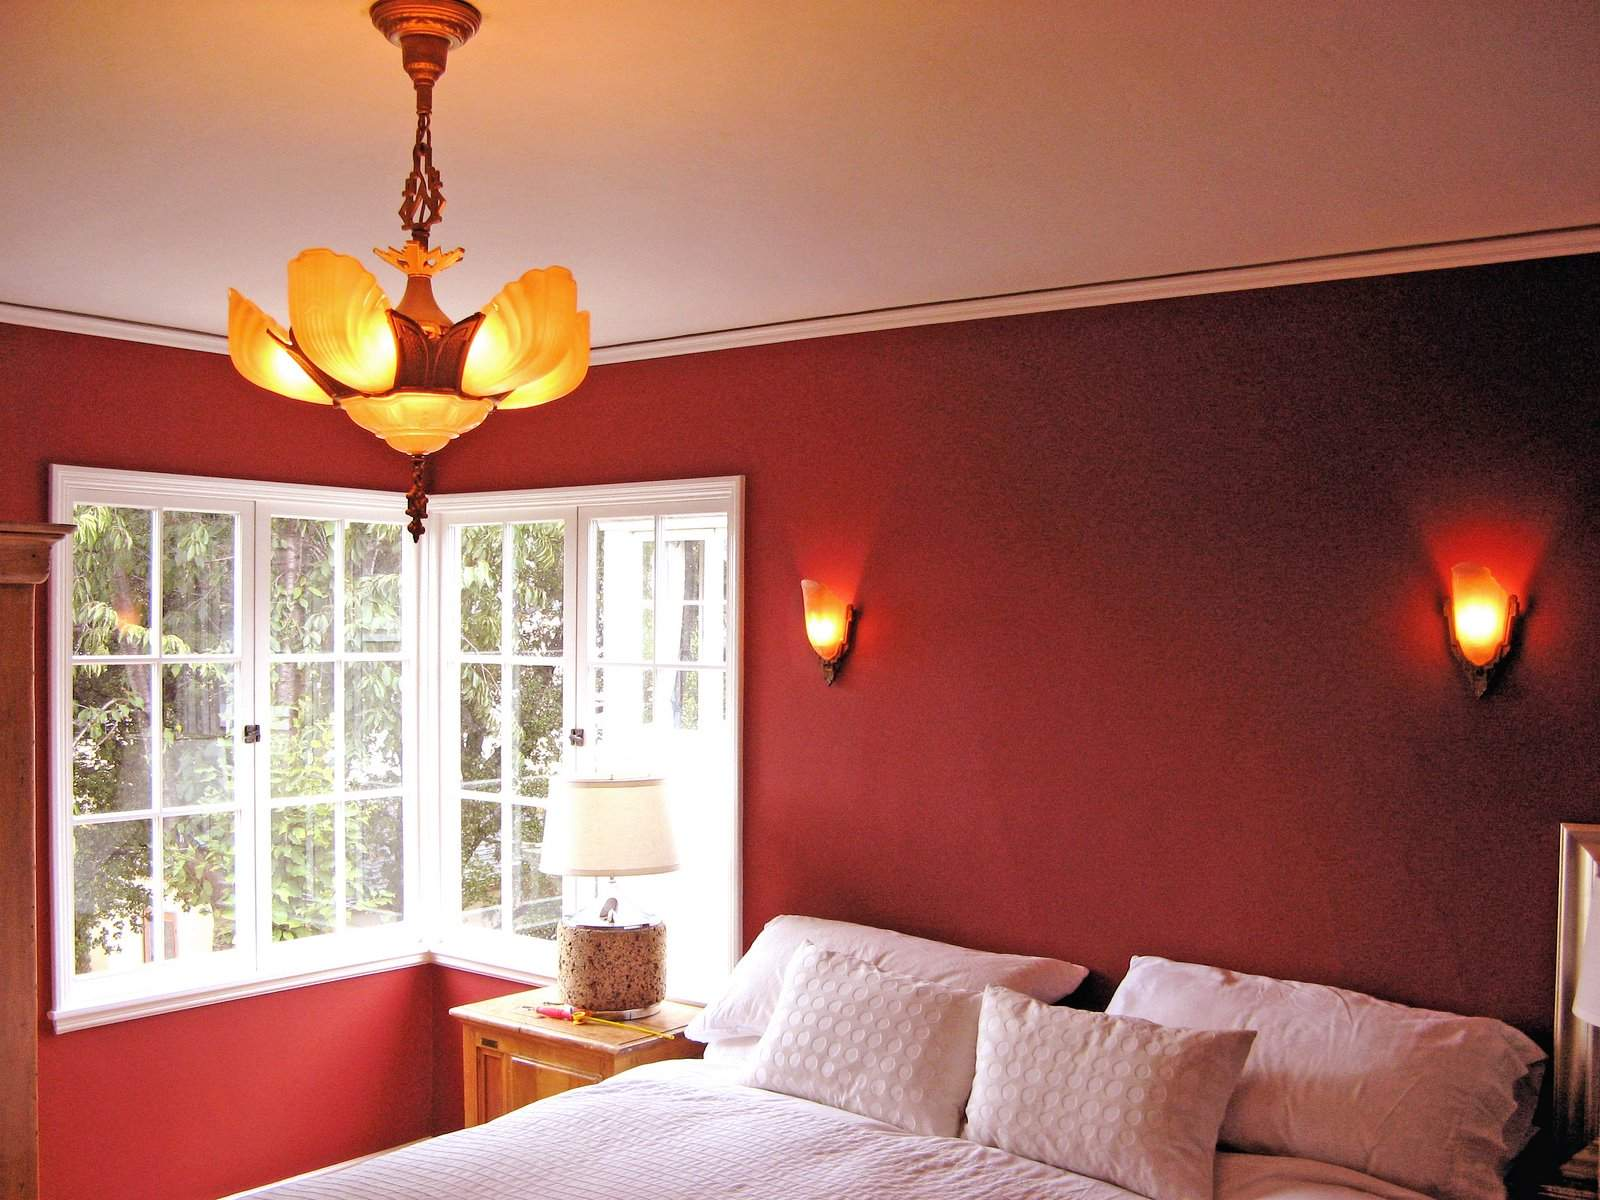 Appealing Wall Paint Ideas Kids Room Pic Inspiration